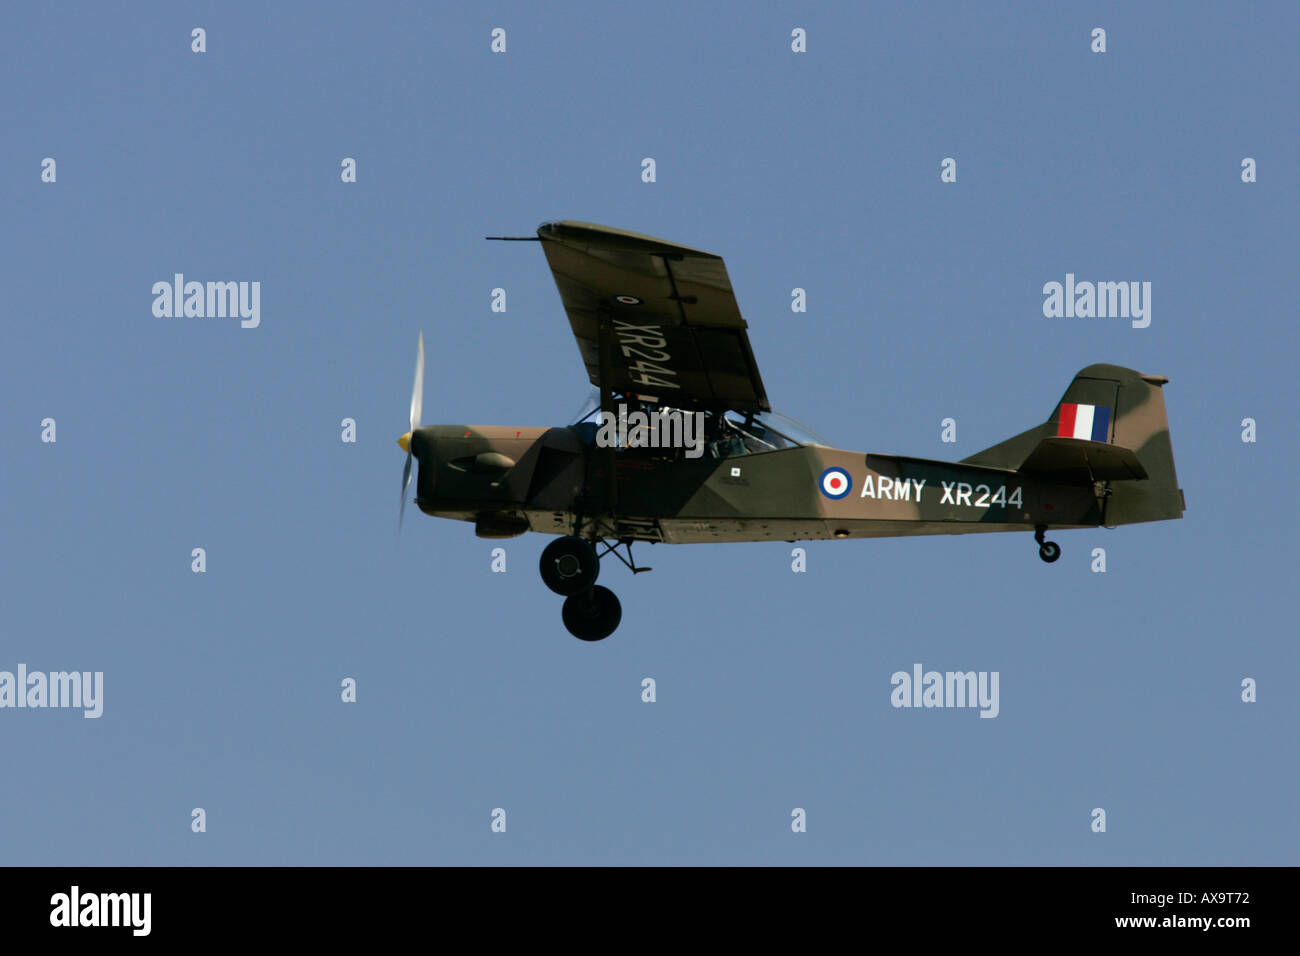 British Army Air Corps Historic Flight Auster XR 244 RIAT 2005 RAF Fairford Gloucestershire England UK - Stock Image